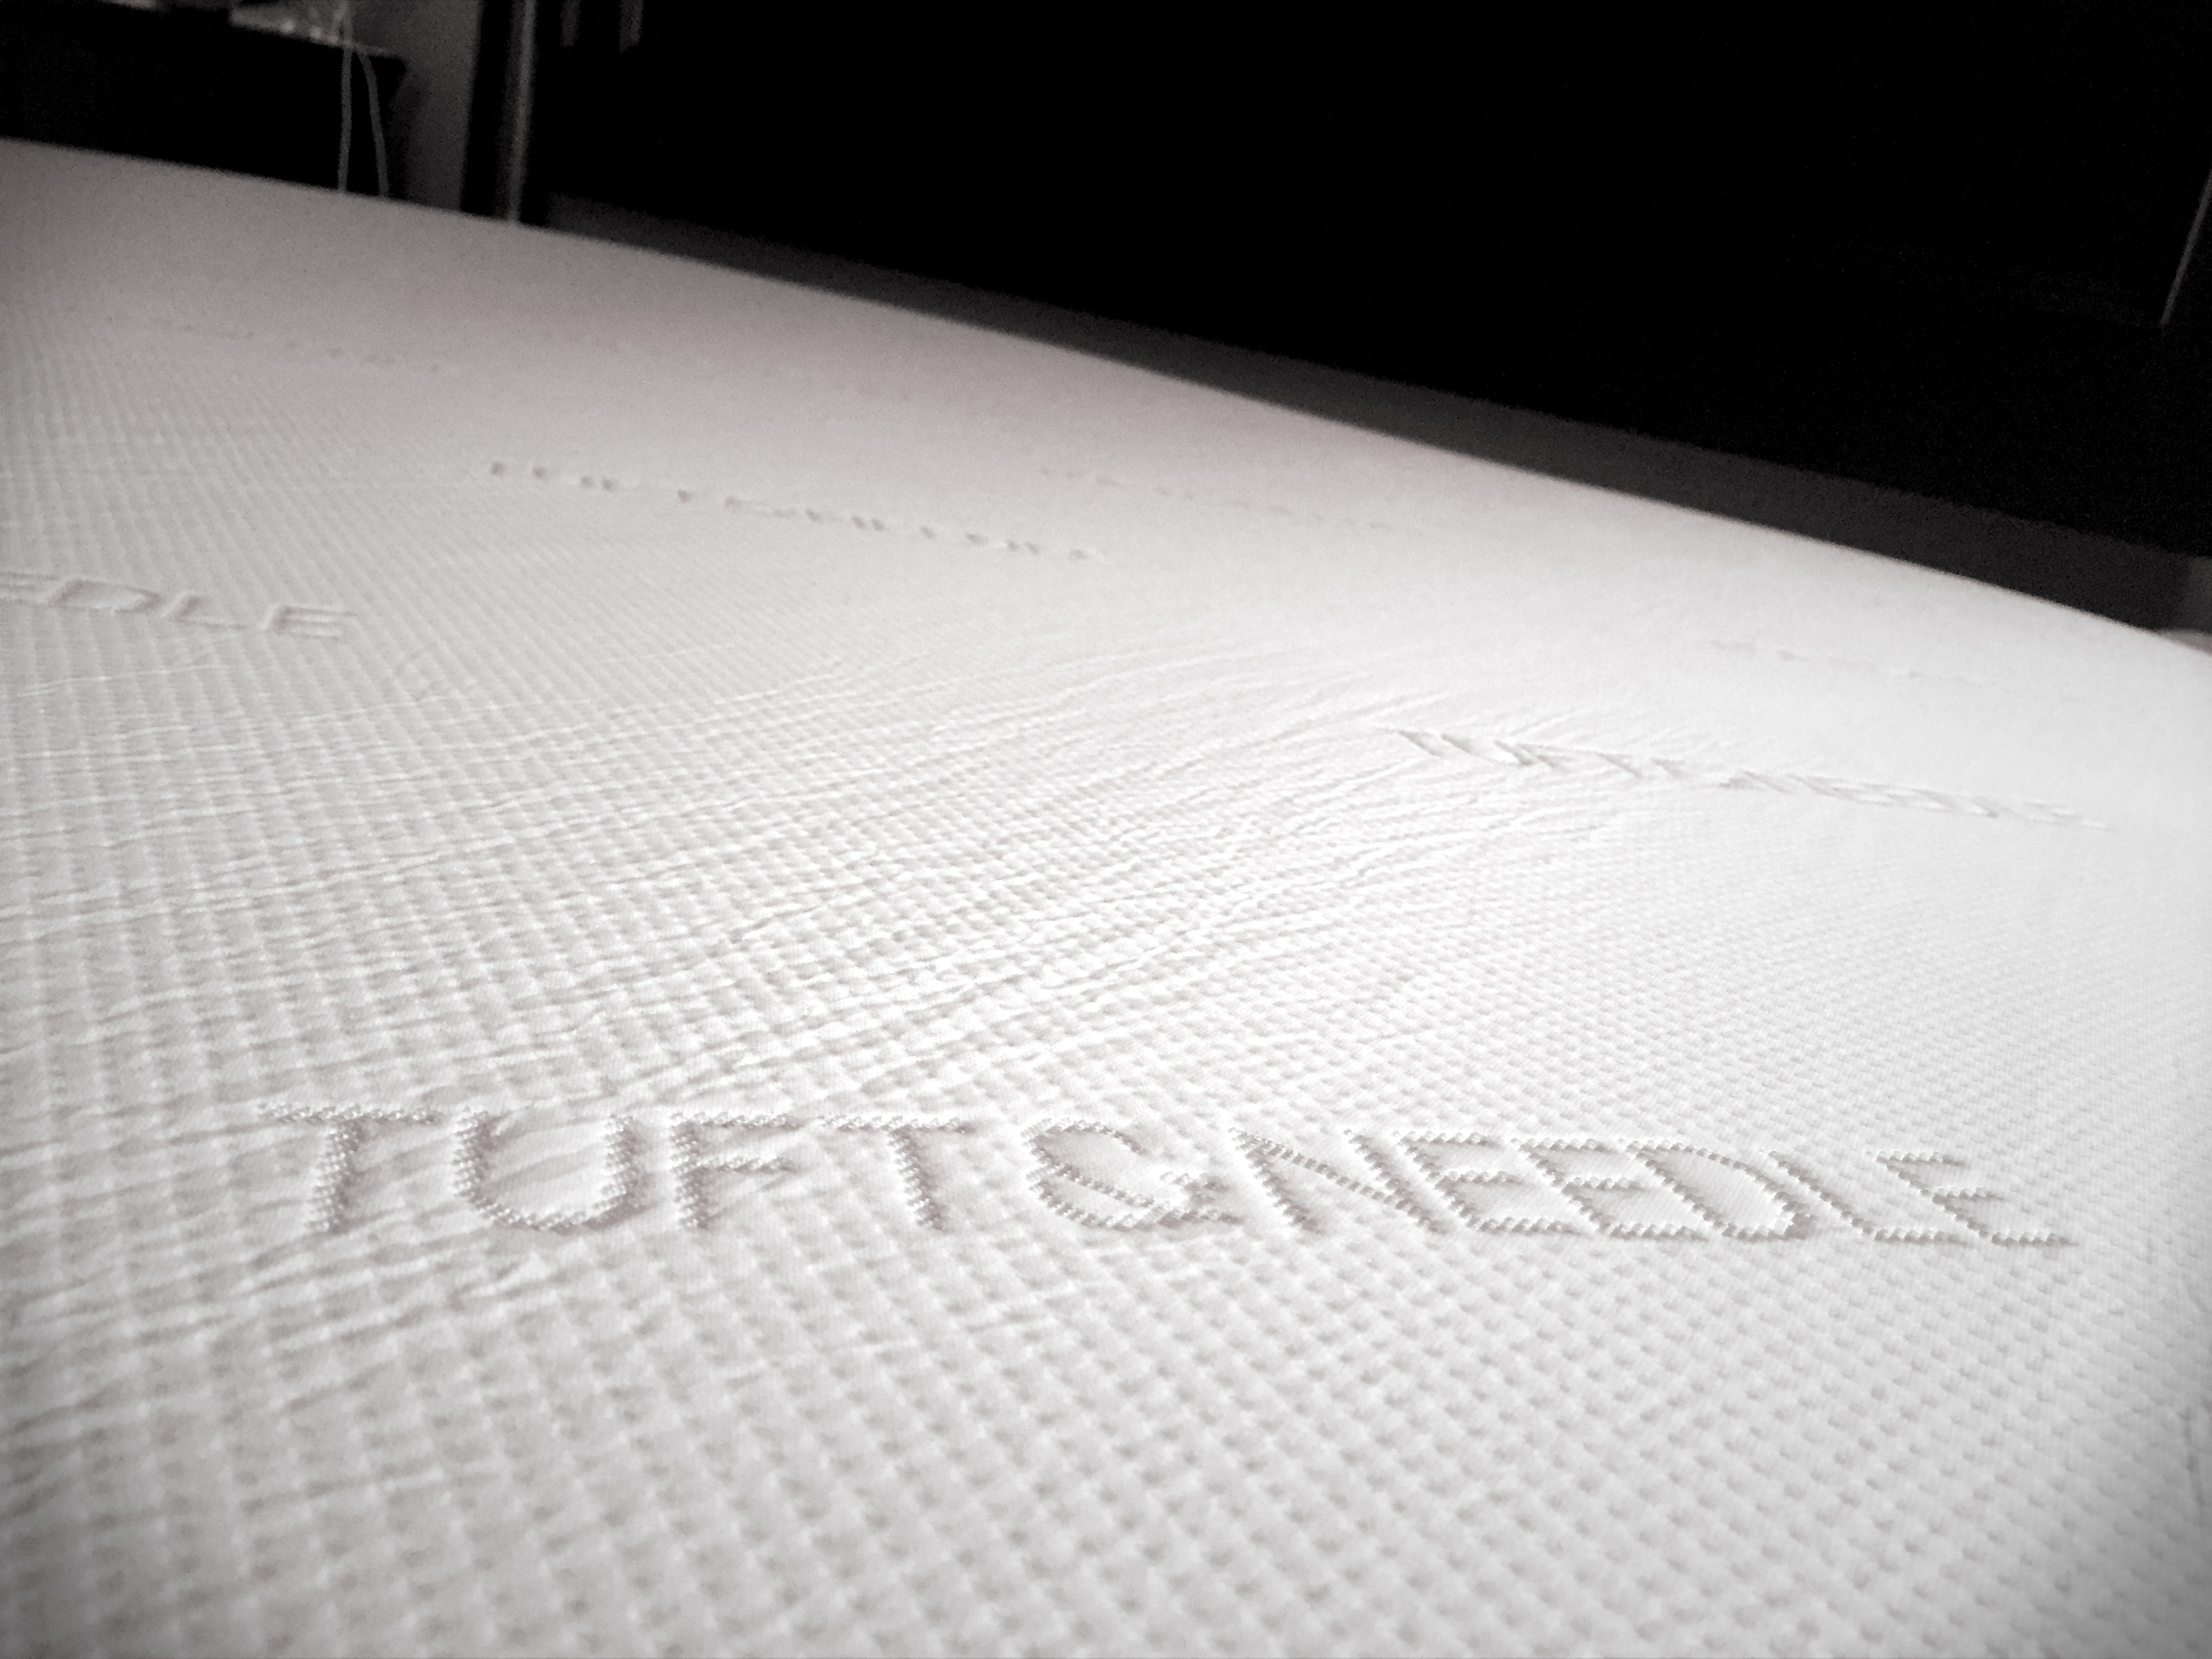 review tuft needle mattress at home in the future